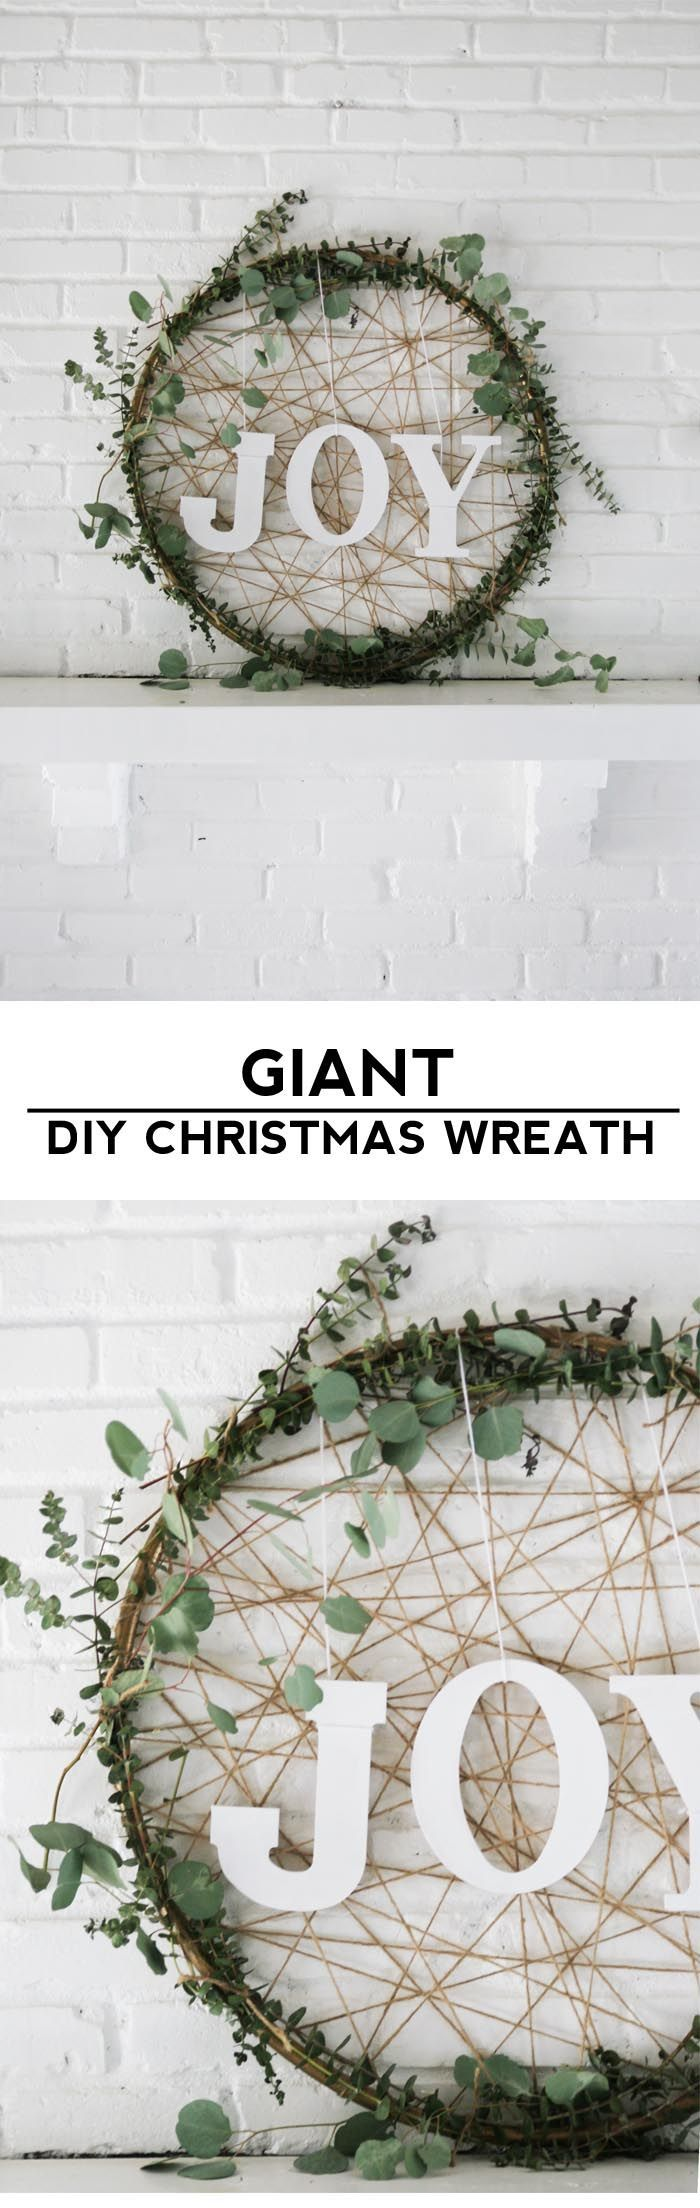 Make a giant DIY Christmas wreath out of a hula hoop and eucalyptus for some rustic and modern Christmas decor!